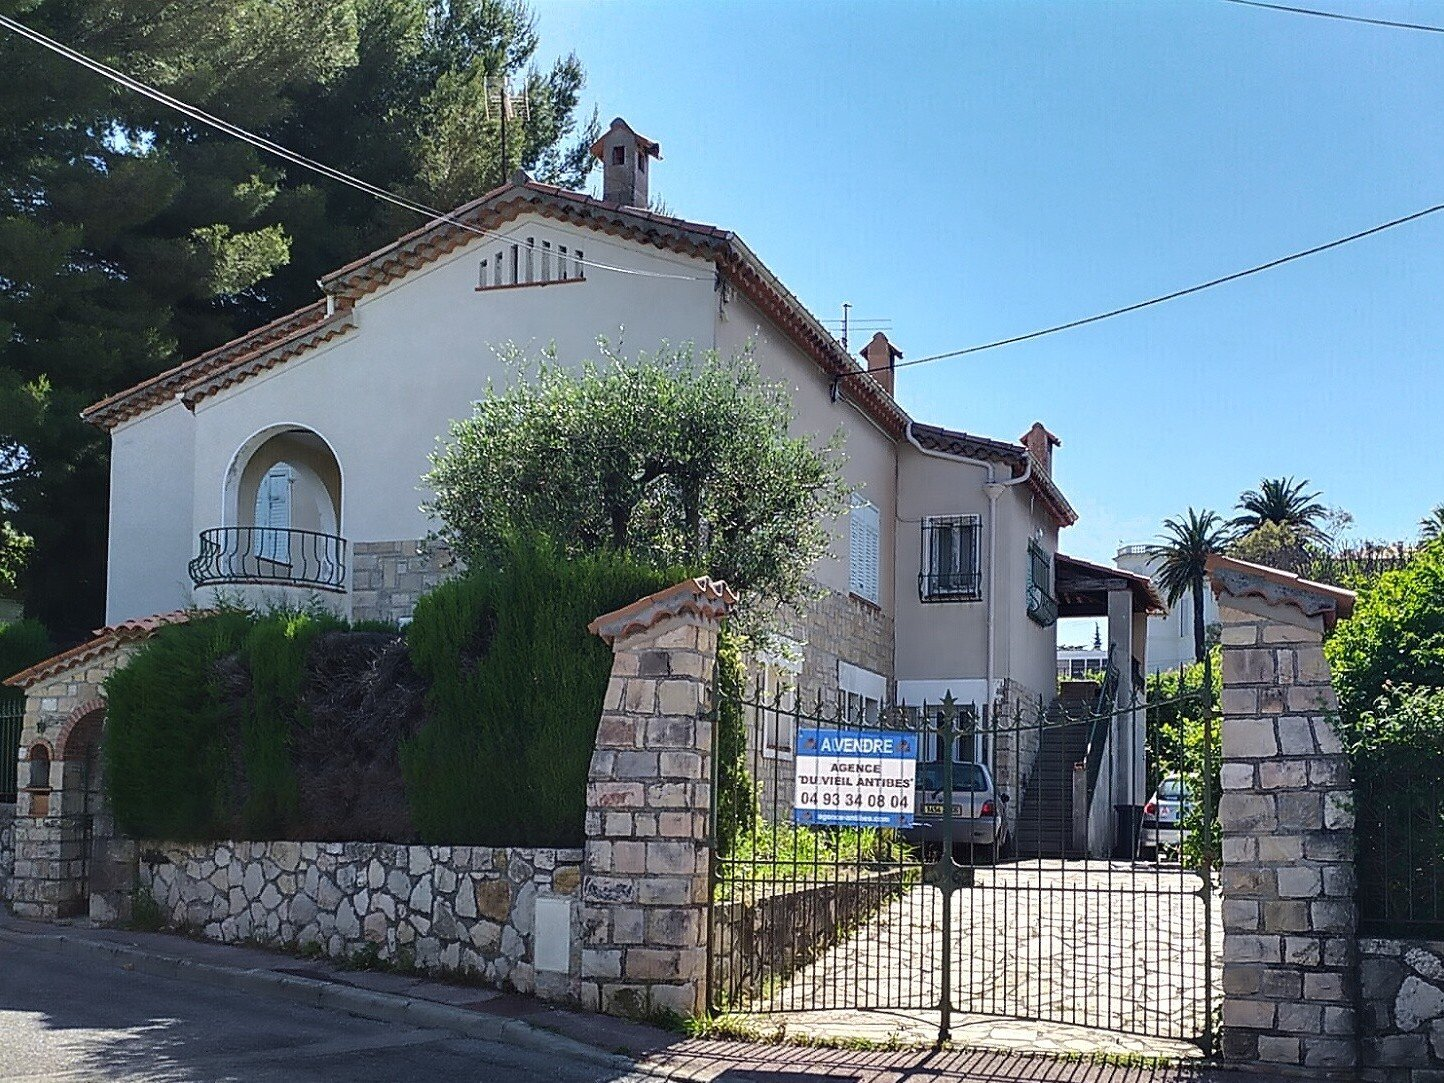 HOUSE NTIBES PONTEIL - 6 BEDROOMS / 220 SQUARE METERS ON 2 LEVELS